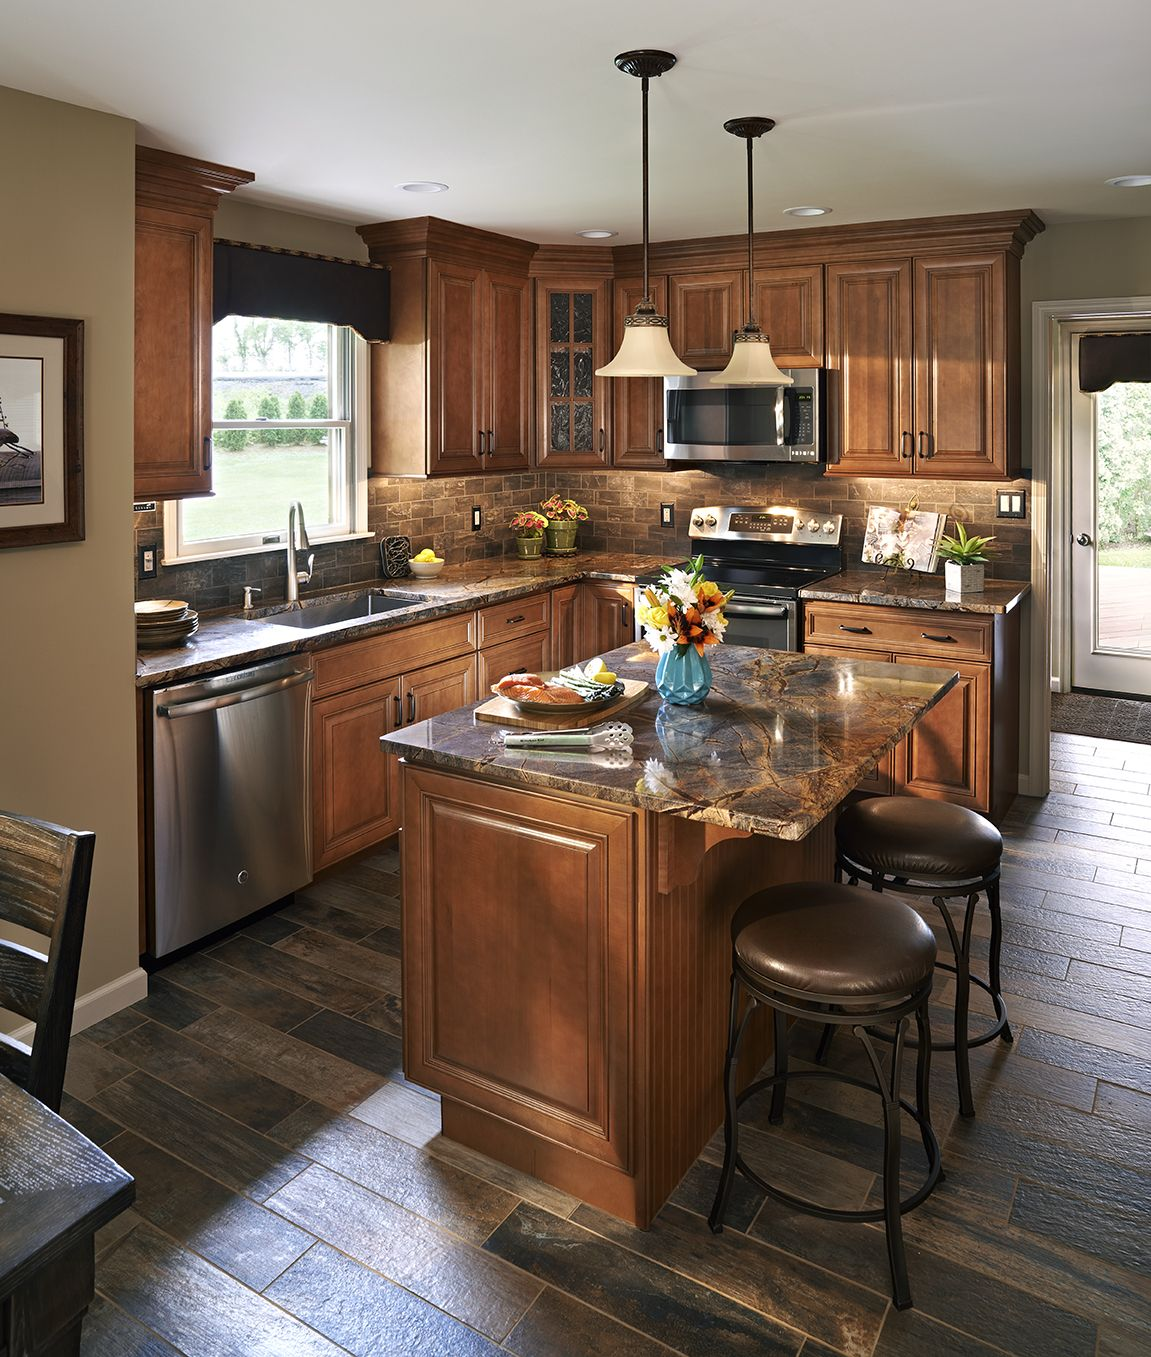 Traditional Kitchen Cabinets And An Inviting Kitchen